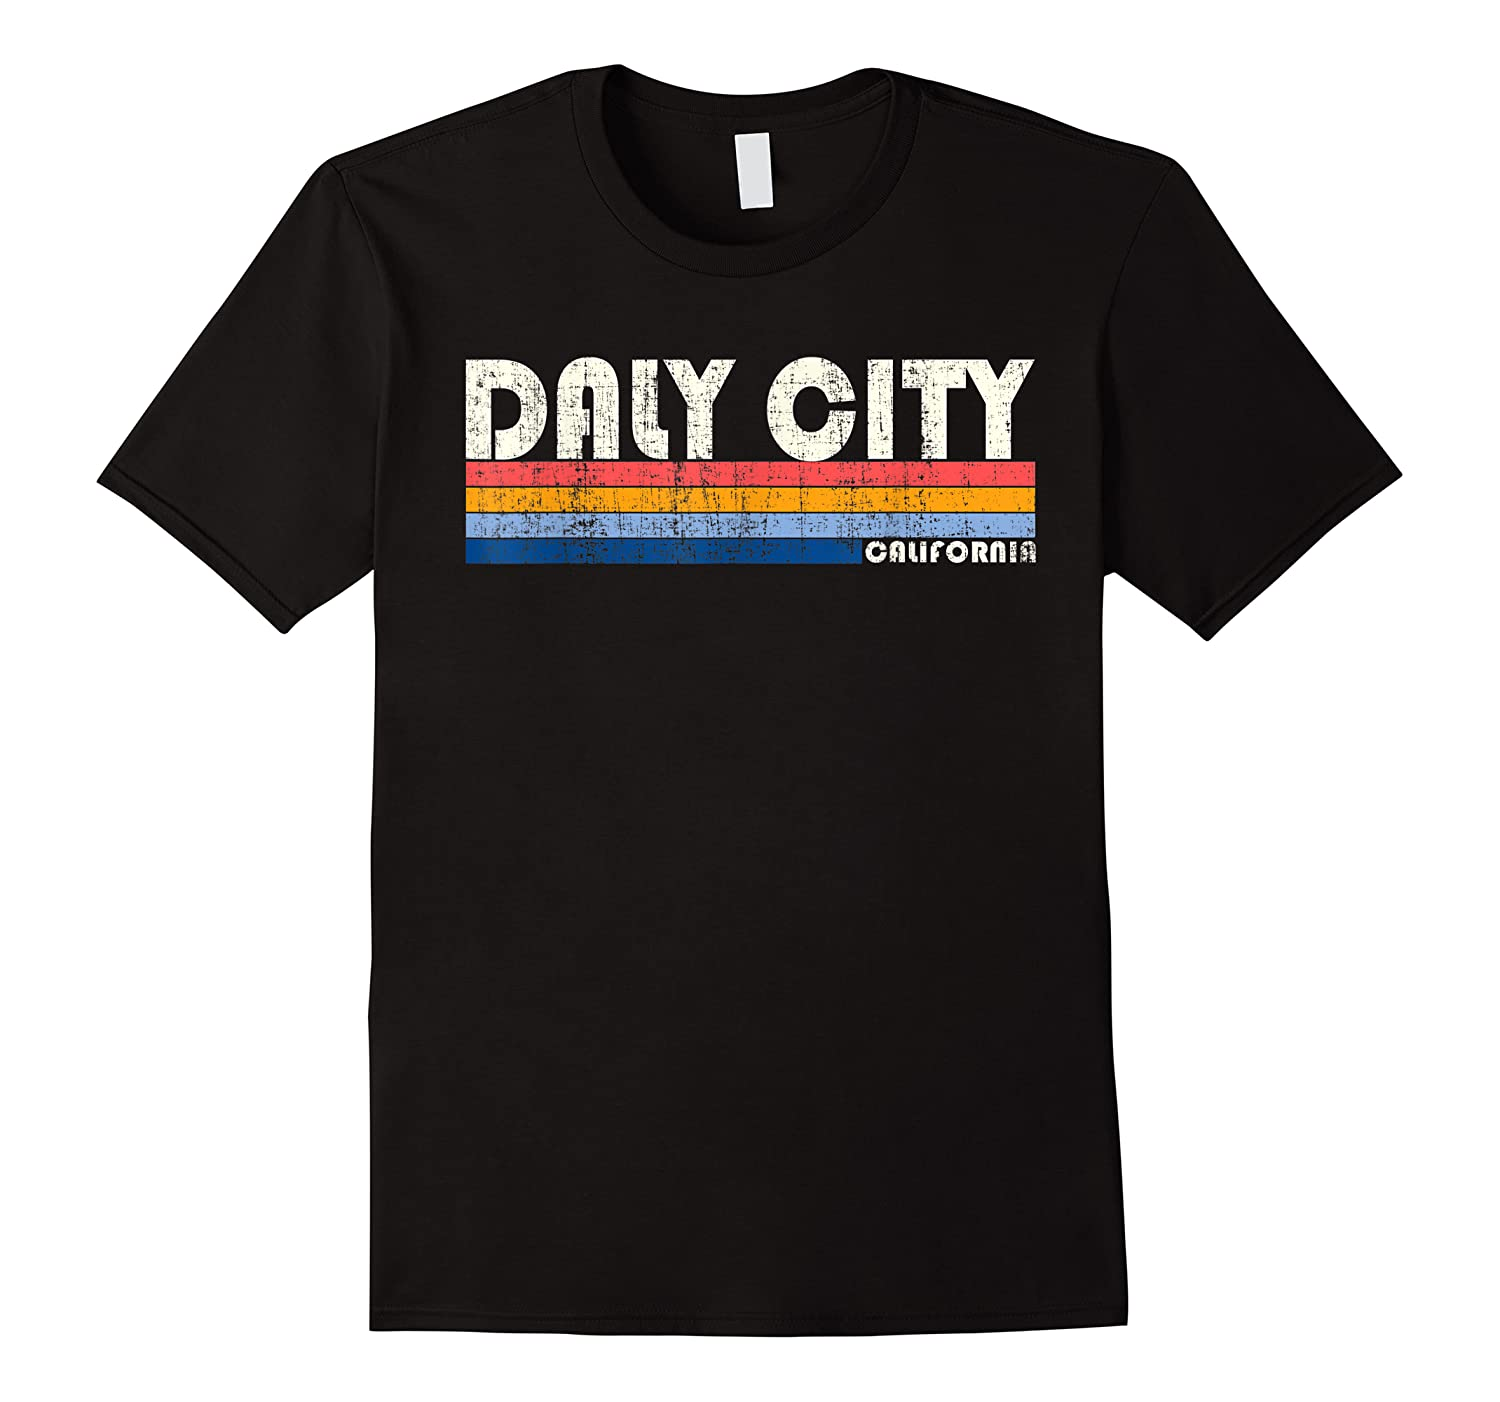 Vintage 70s 80s Style Daly City Ca T Shirt